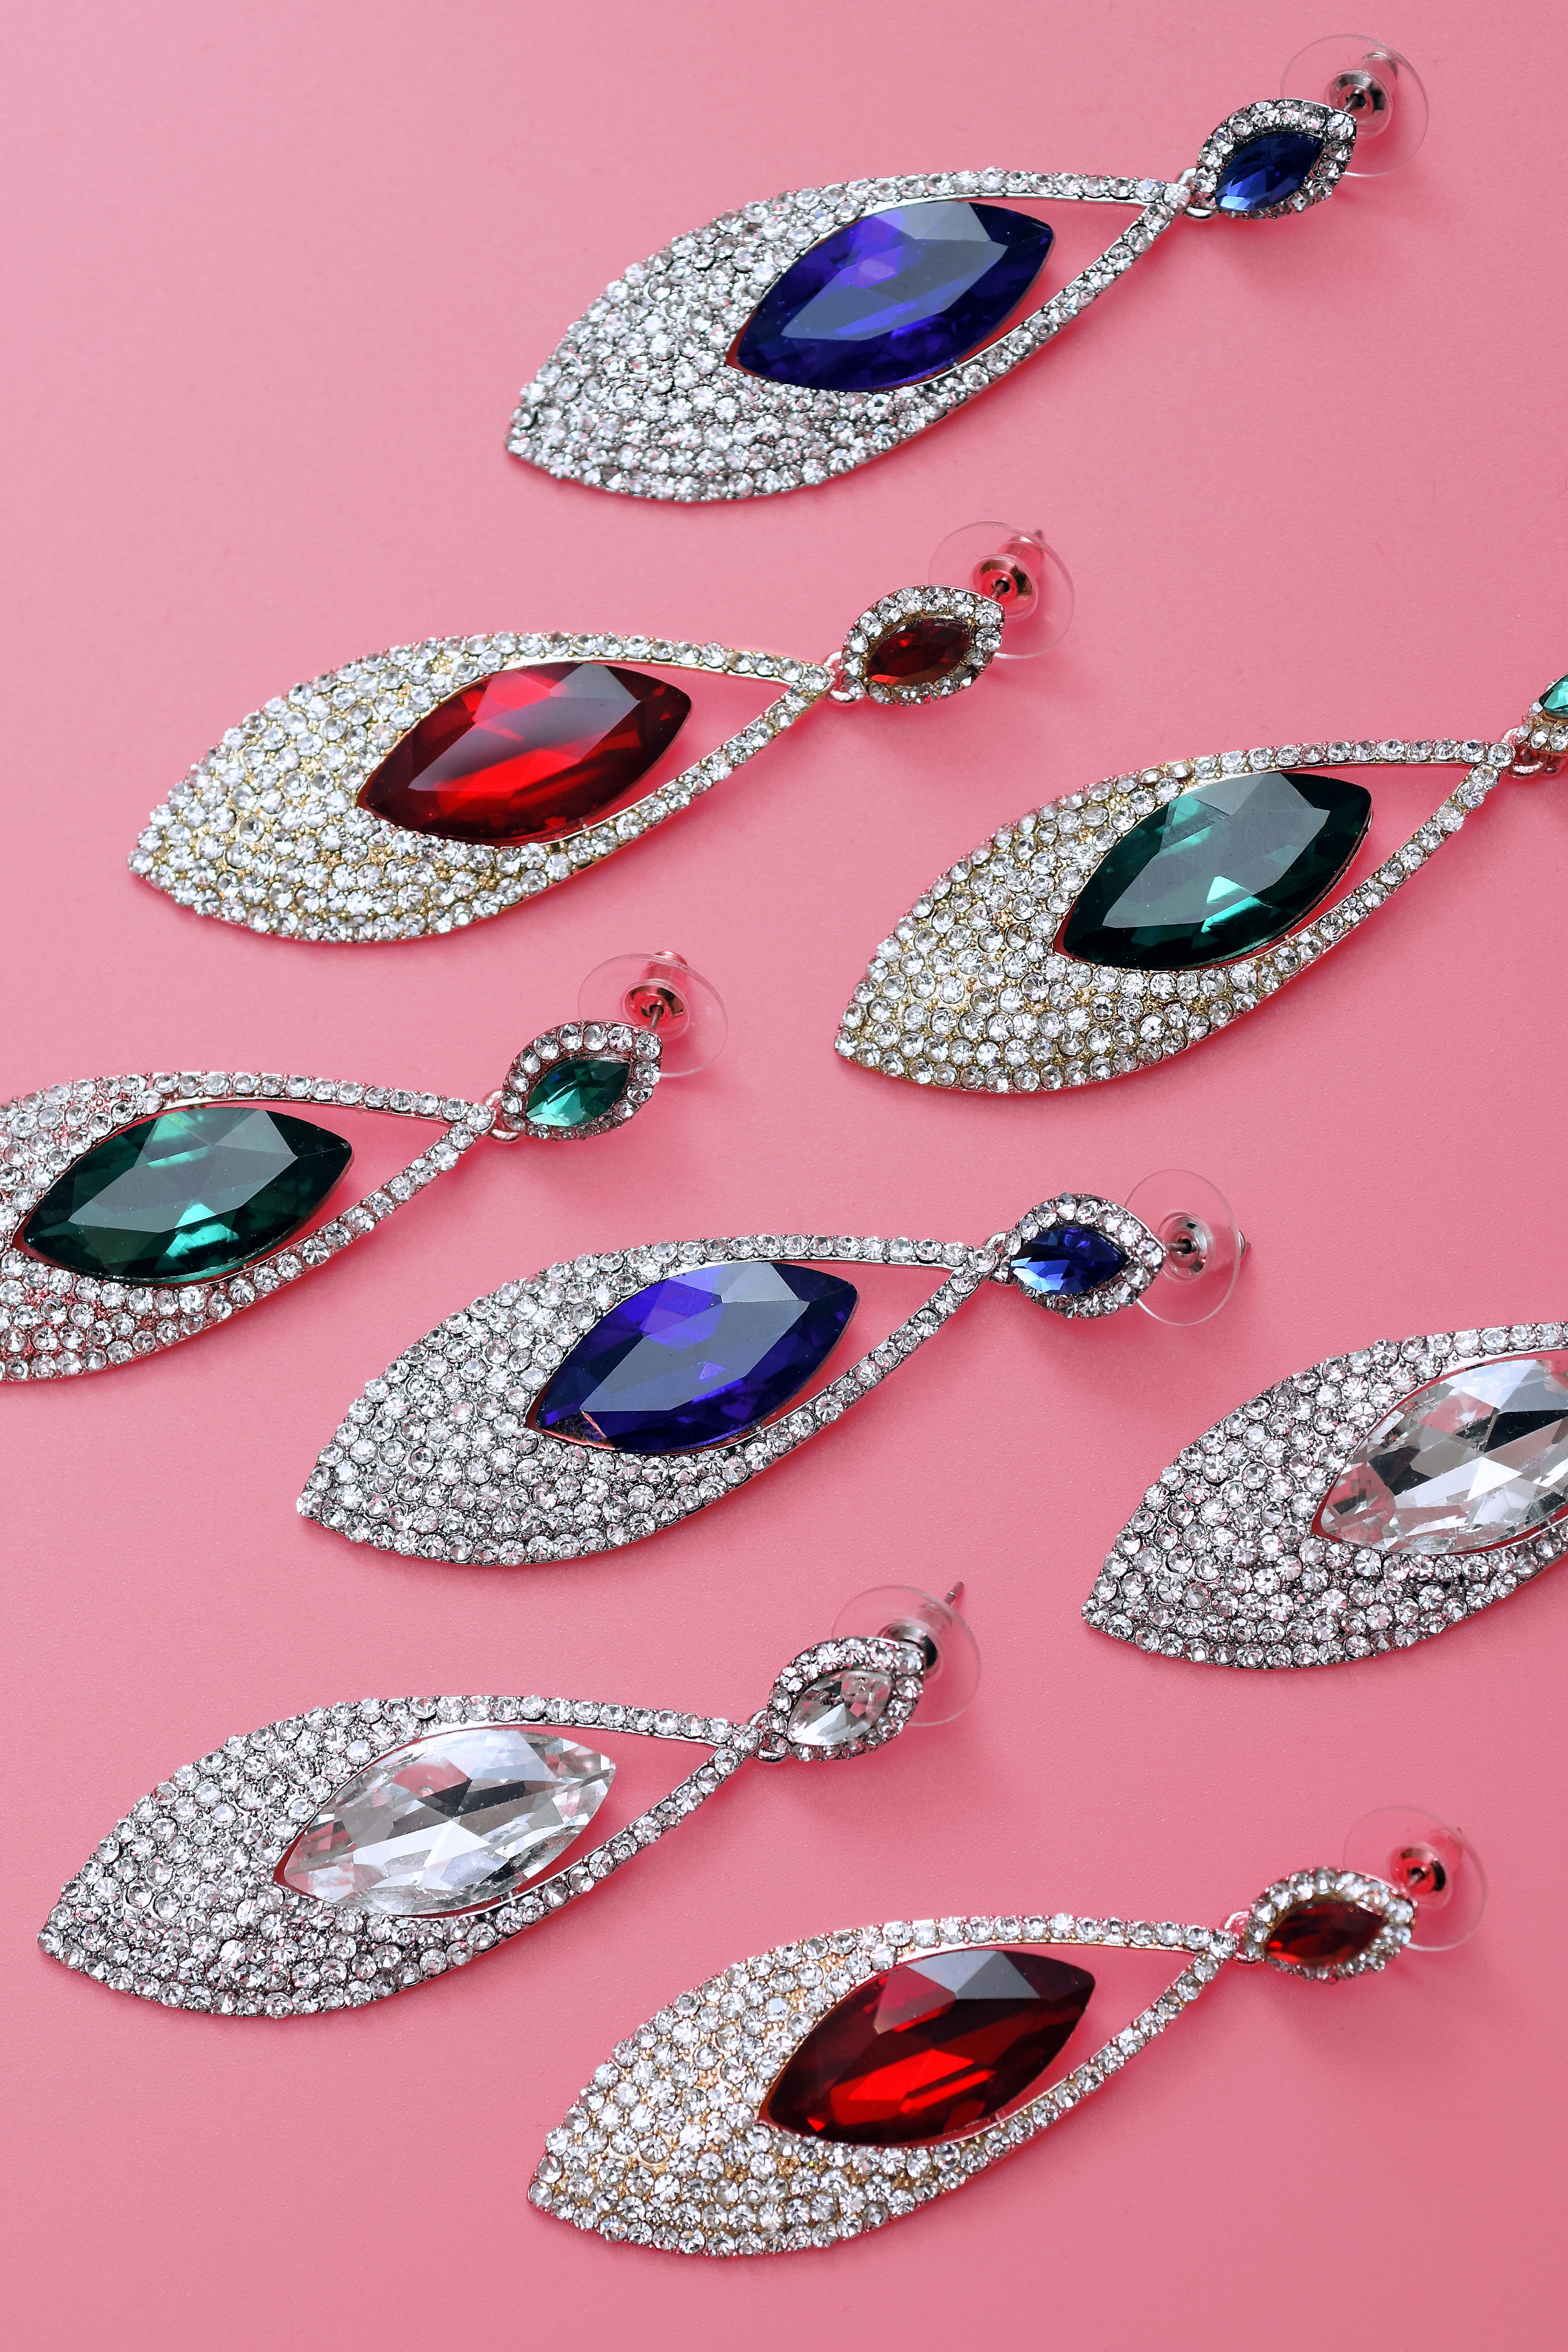 eight silver-colored teardrop earrings with assorted-color gemstones